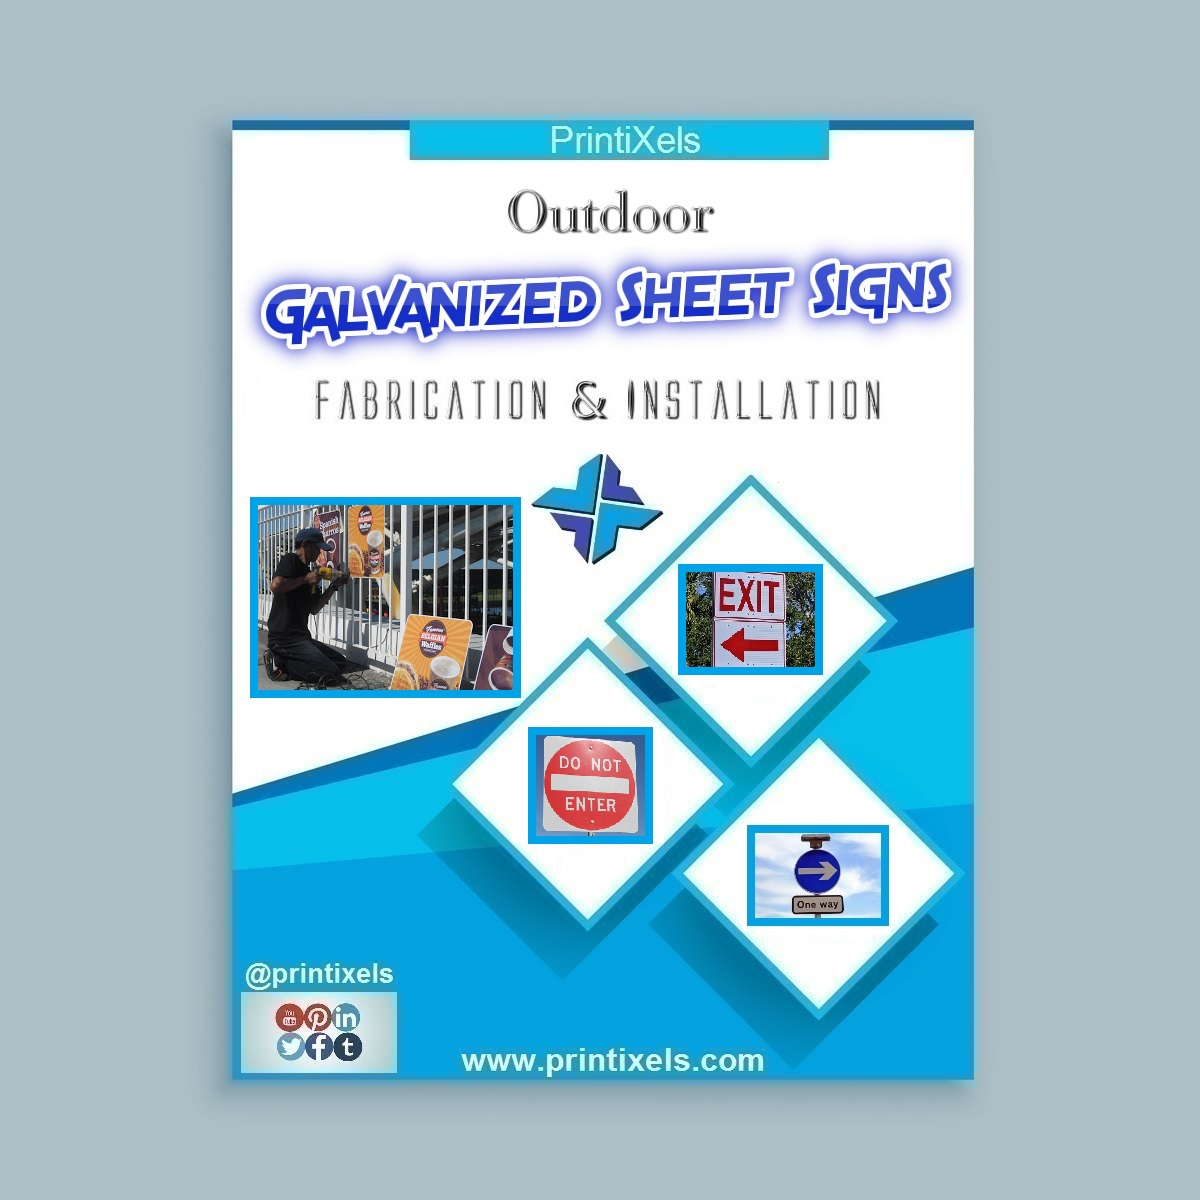 Galvanized Sheet Metal Signs - Fabrication & Installation